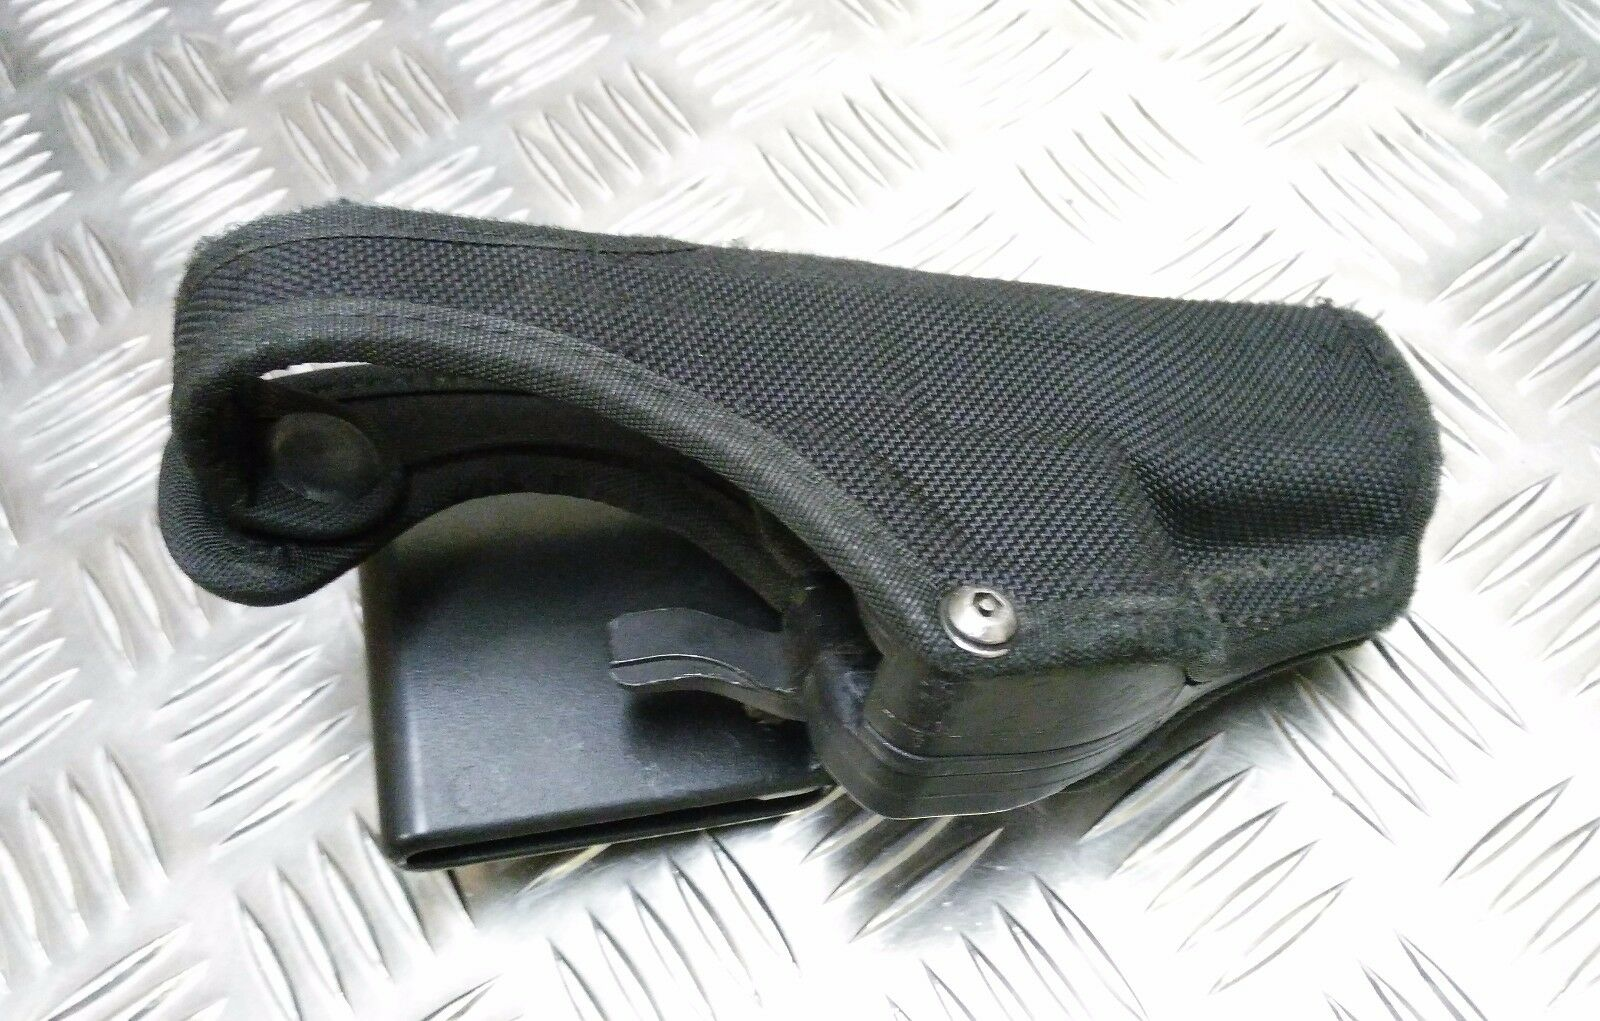 Genuine Bianchi MoD MoD MoD Military / Police Thumbsnap Holster & Ammo Pouch HPS01 671cf9